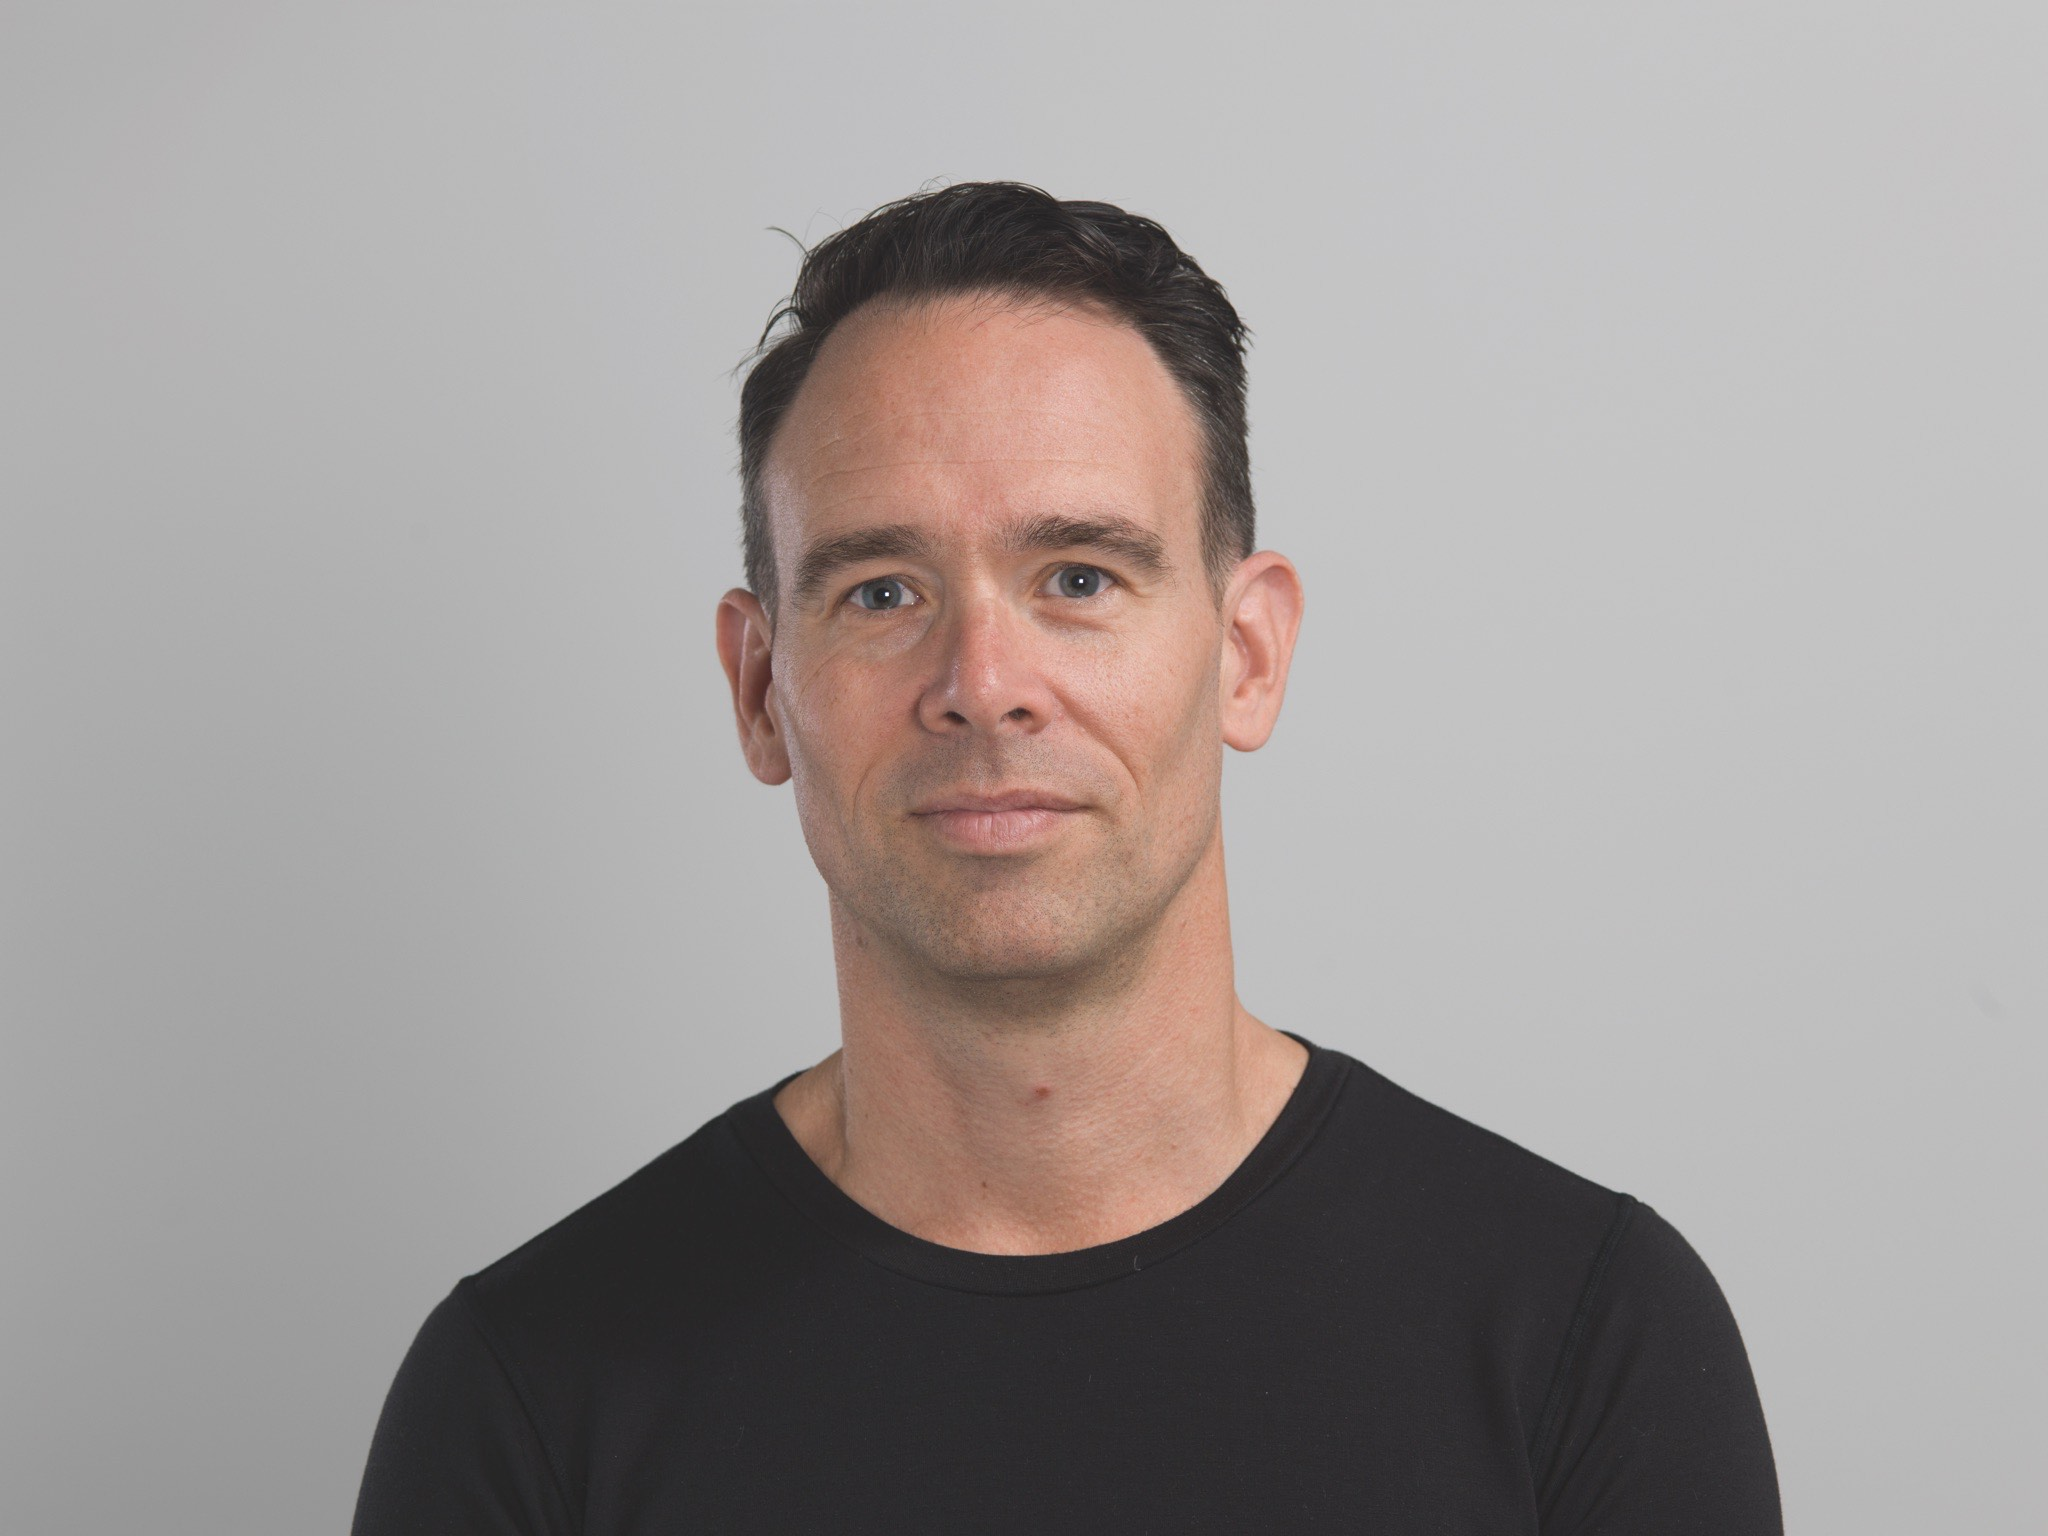 Former Re head of strategy Tom Donald joins The Royals Sydney as new head of strategy